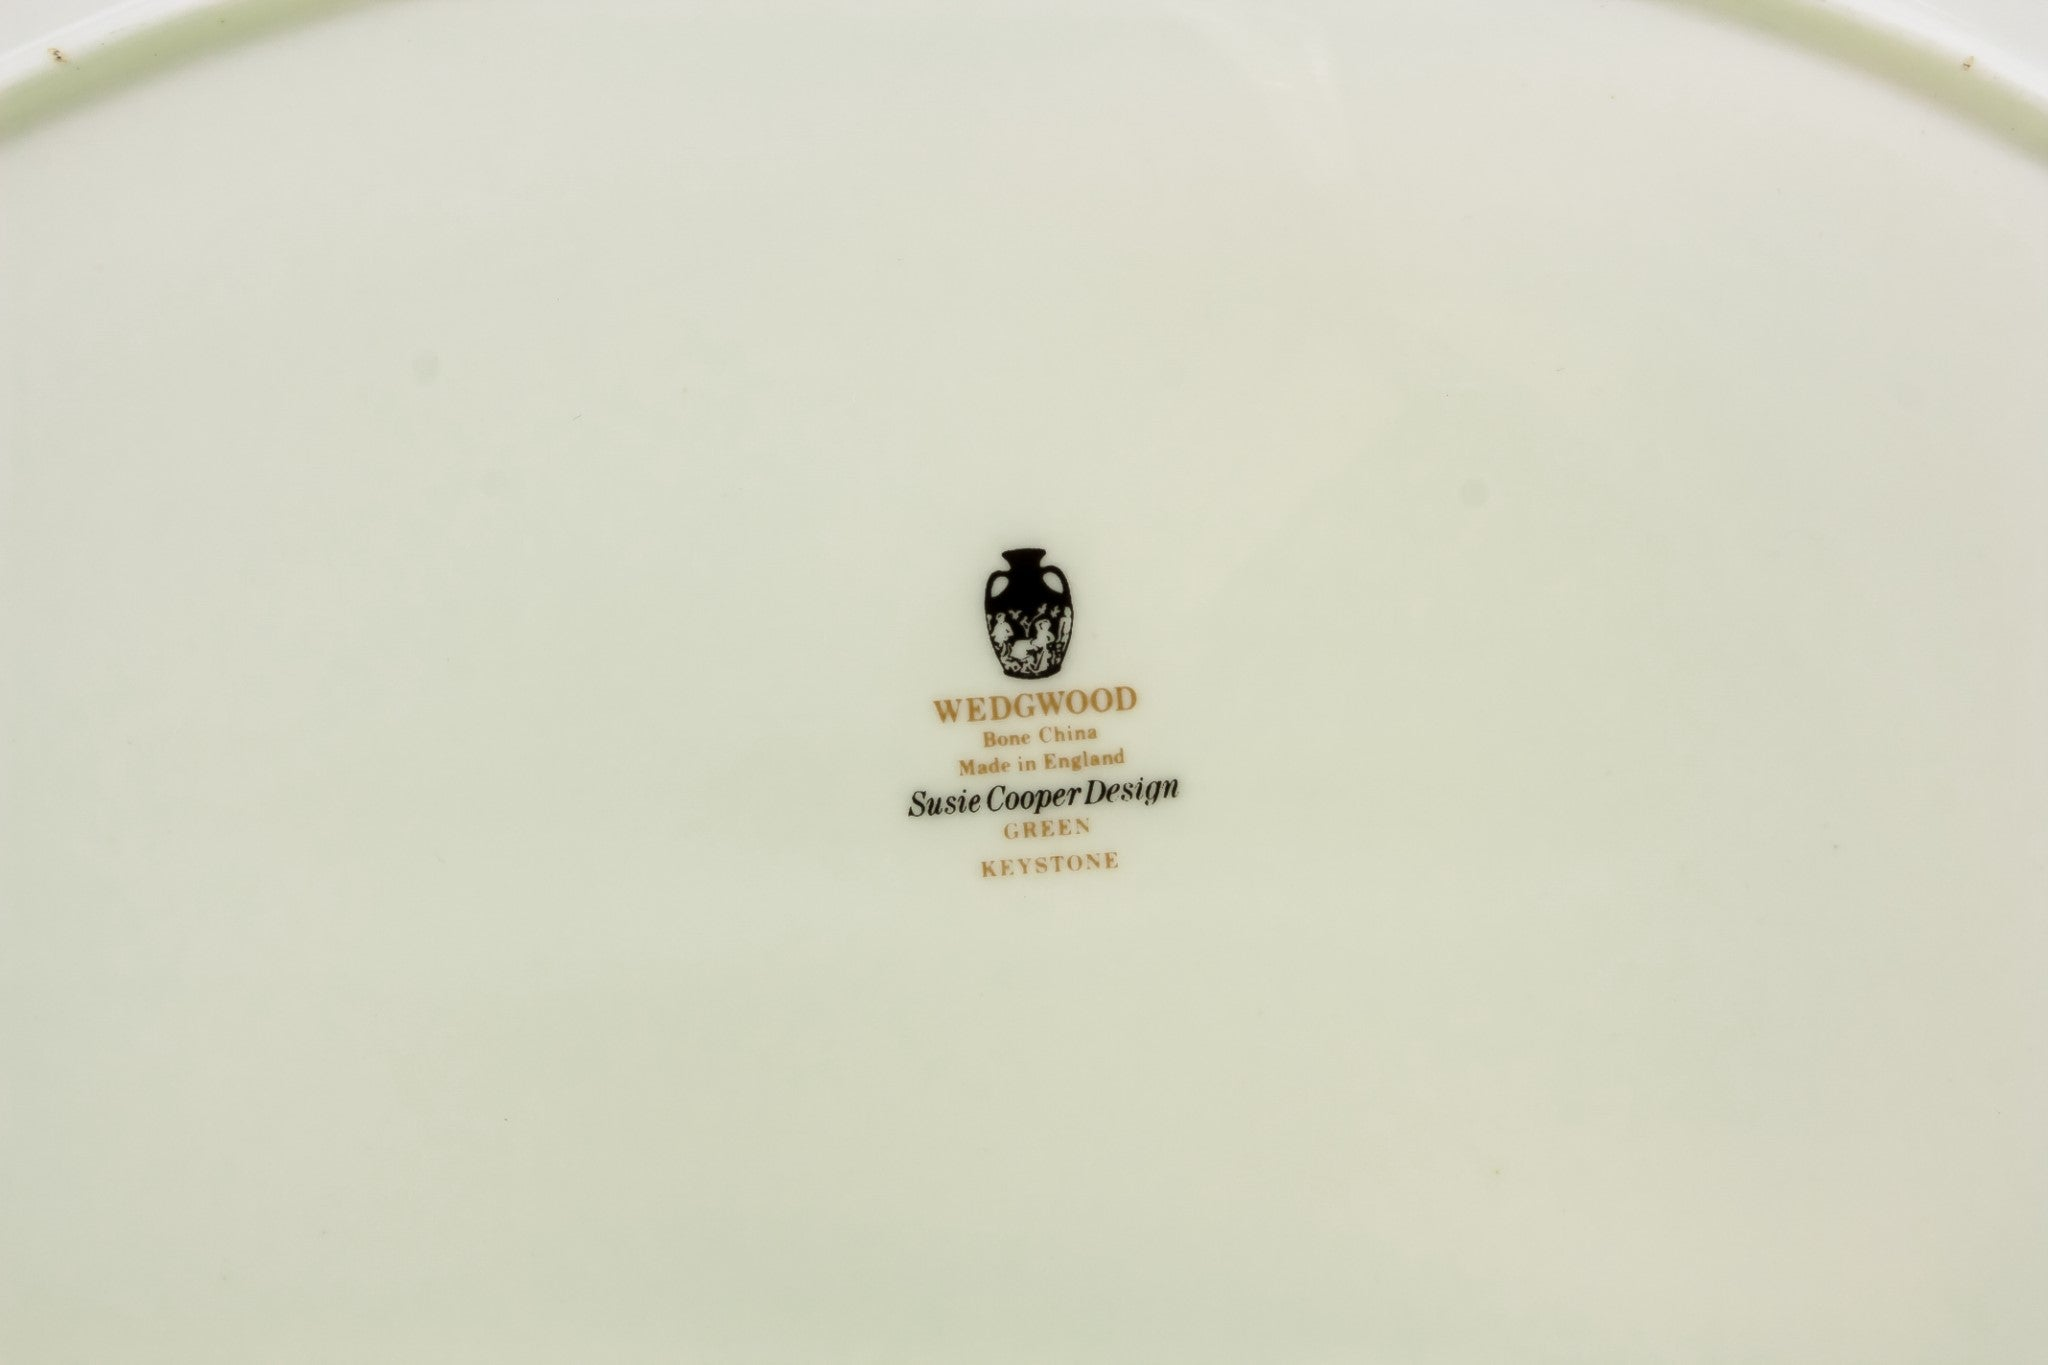 Wedgwood bone china platter